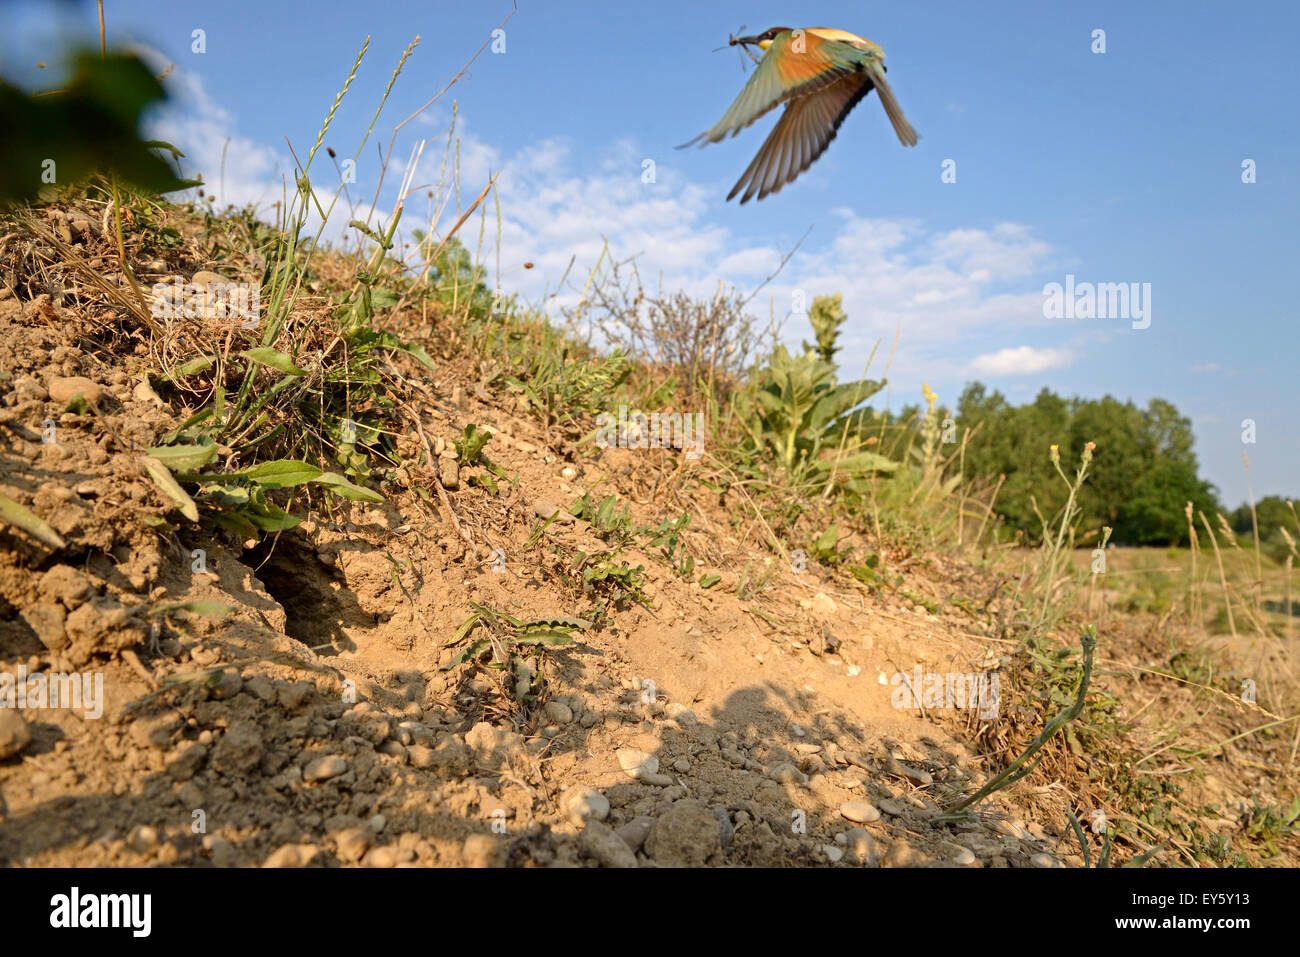 European Bee-eater flying - Low Doubs Valley France - Stock Image